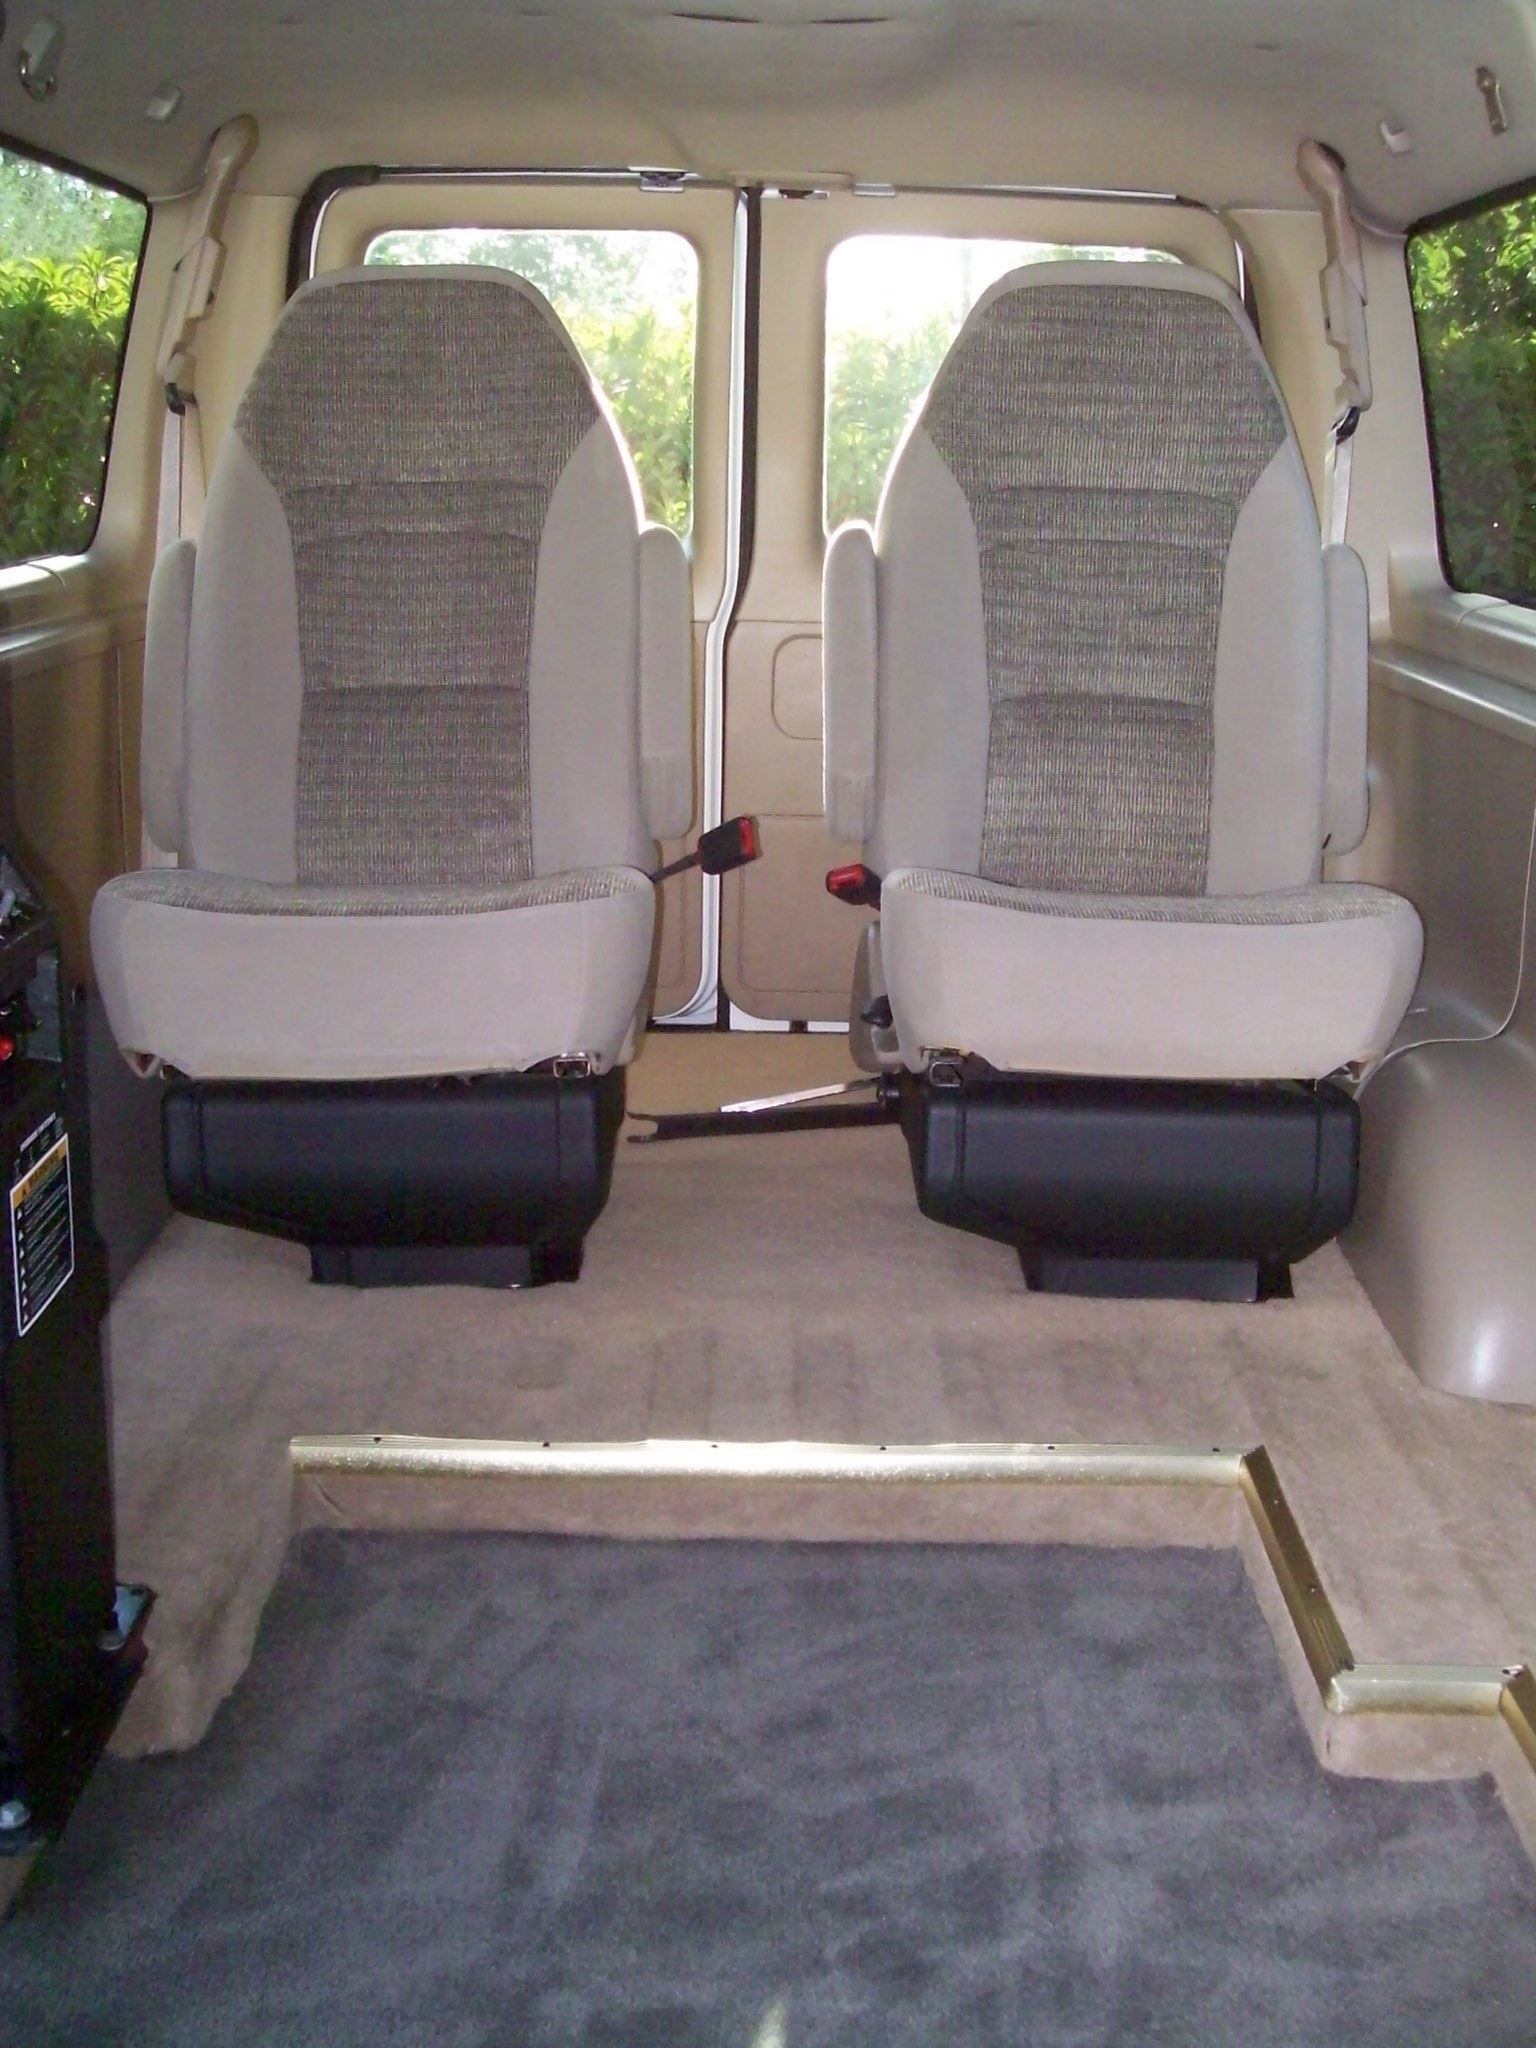 This Van Has Rear Bucket Seats Which Are Very Rare And Desirable Photo Also Indicates The 4 Inch Dropped Floor Click On Picture To Enlarge